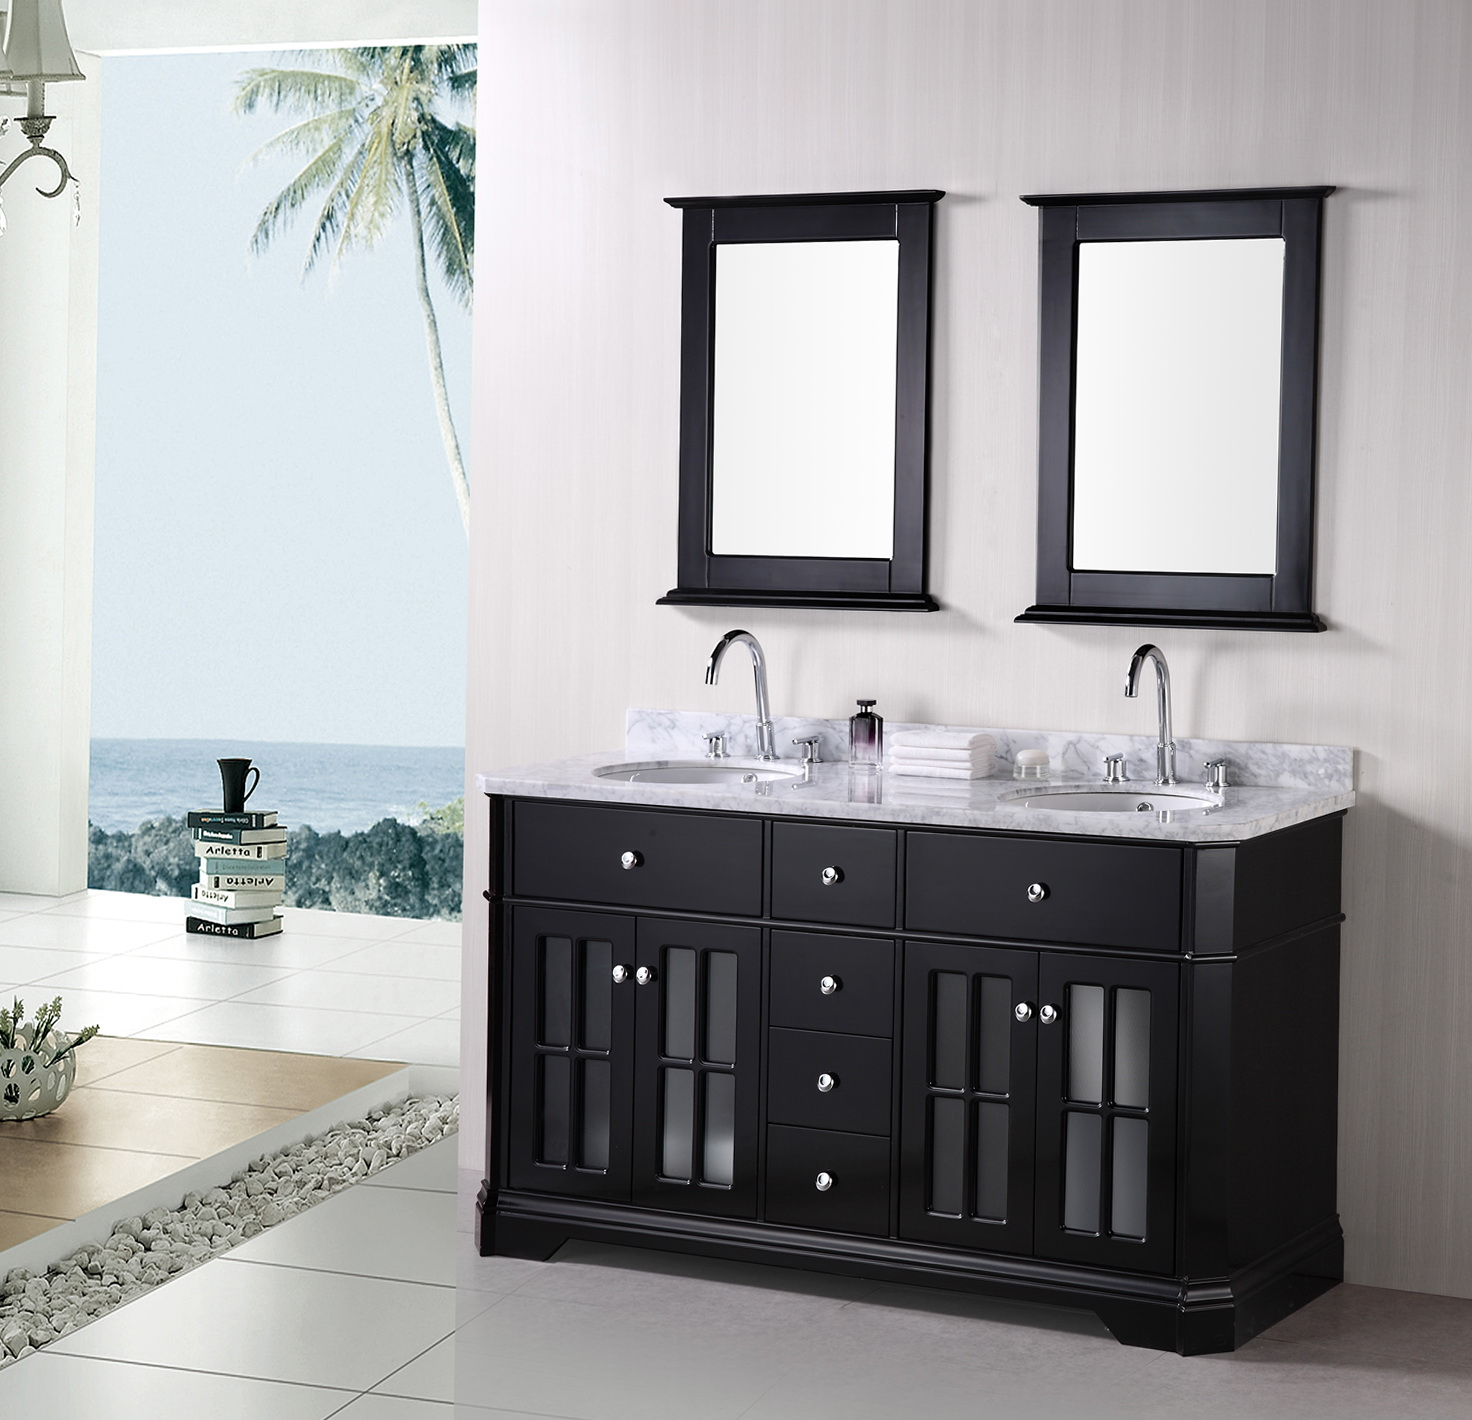 Bathroom mirror ideas double vanity home design ideas for Vanity mirrors for bathroom ideas